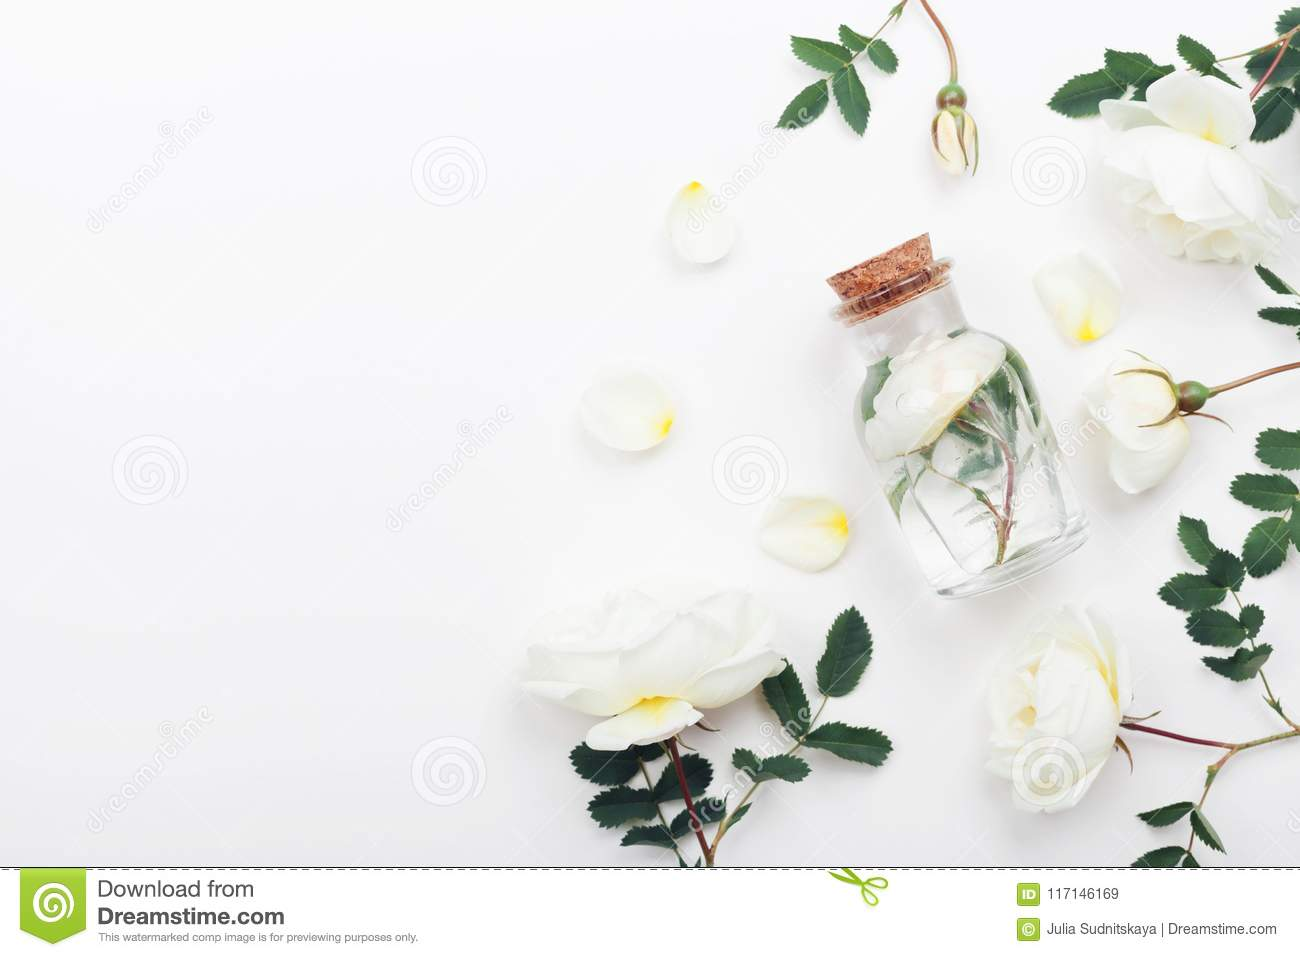 Glass jar with aroma water and white rose flowers for spa and aromatherapy. Top view and flat lay style.